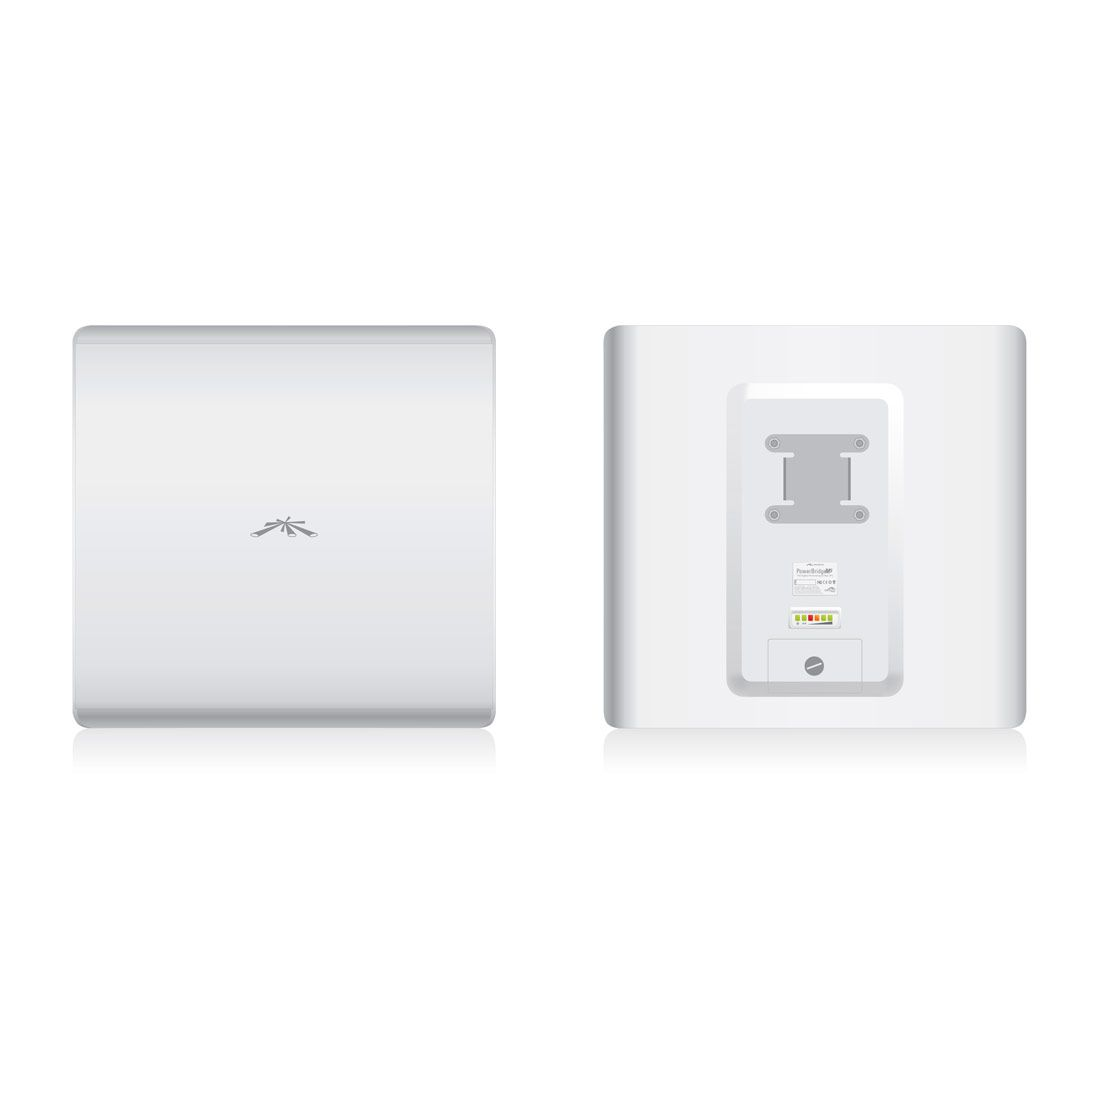 Ubiquiti Powerbridge M5 - 5,8GHz